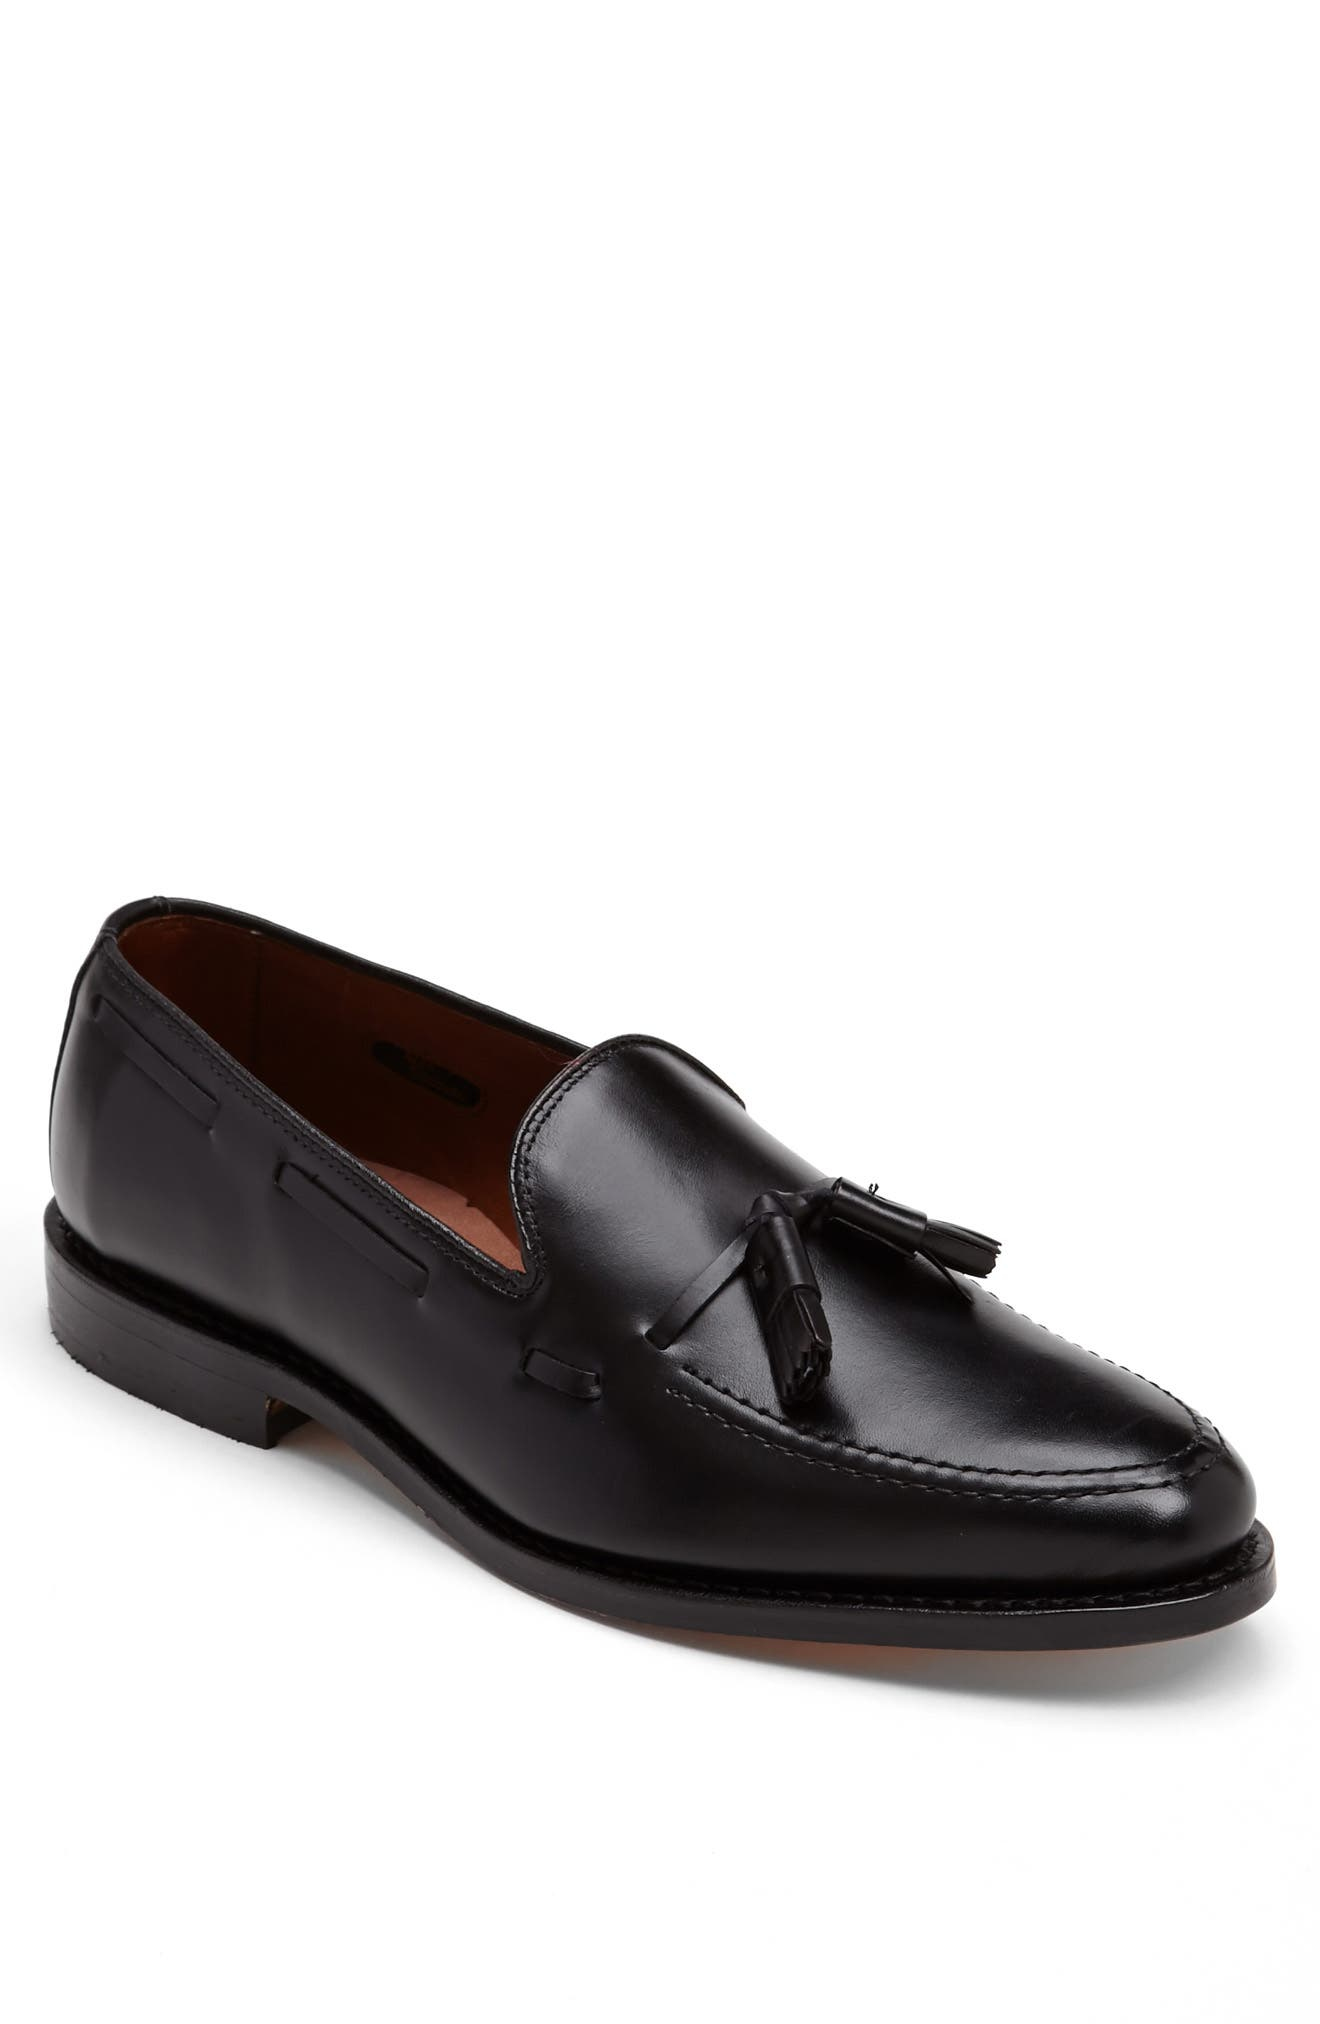 'Grayson' Tassel Loafer,                             Alternate thumbnail 4, color,                             Black Leather